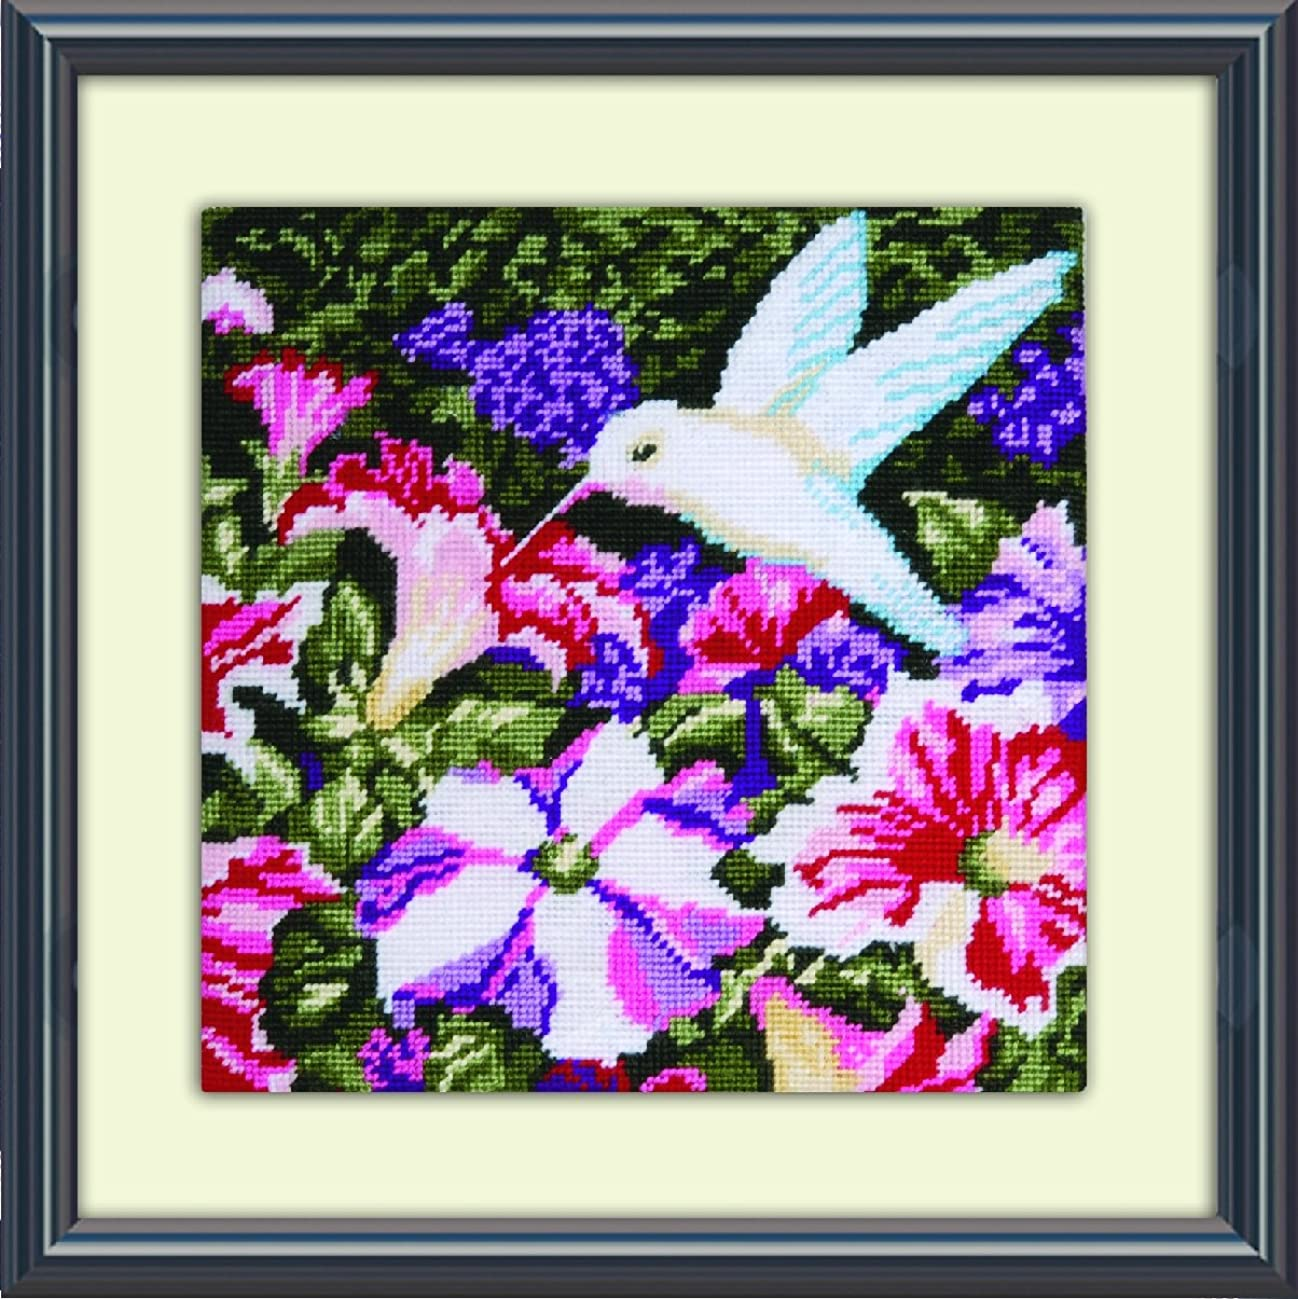 Tobin DW2520 Needlepoint Kit, 10 by 10-Inch, Hummingbirds